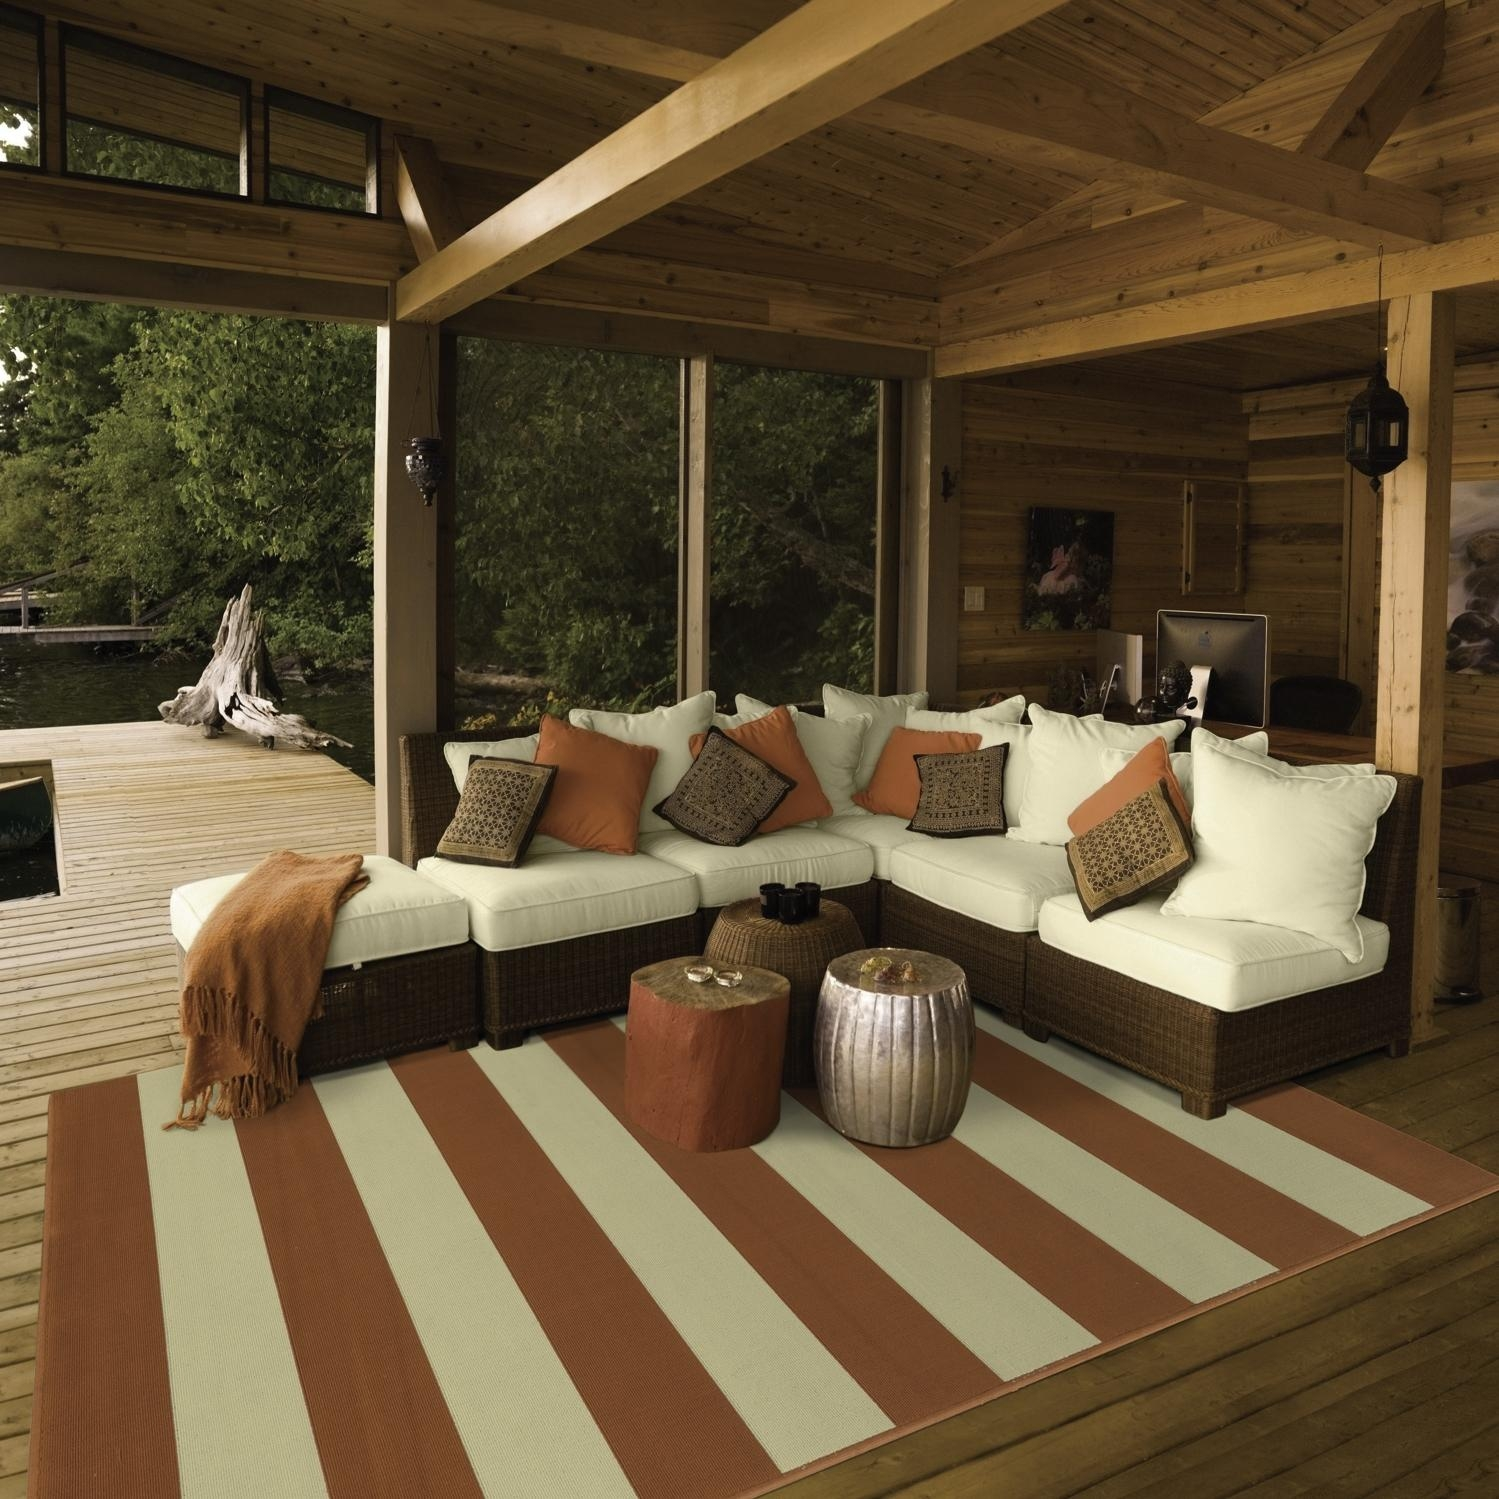 Outdoor Rugs For Decks Show Home Design Inside Outside Rugs For Decks (Image 8 of 15)